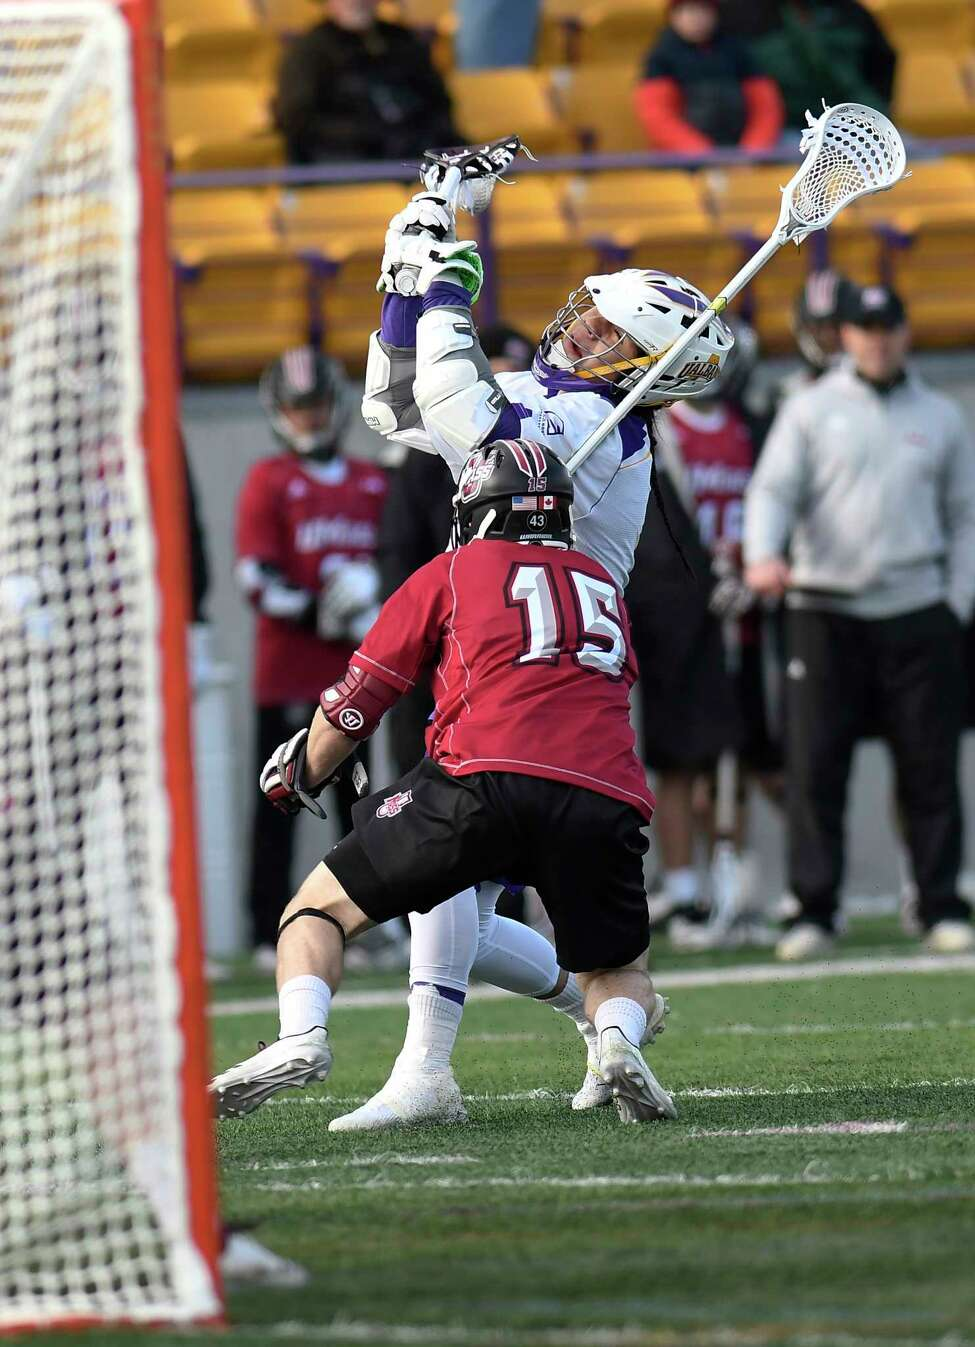 University at Albany's Tehoka Nanticoke ,top right, shoots the ball agianst University of University of Massachusetts' Isaac Paparo (15) during a home opener NCAA lacrosse game Tuesday March 5, 2019, in Albany, N.Y.